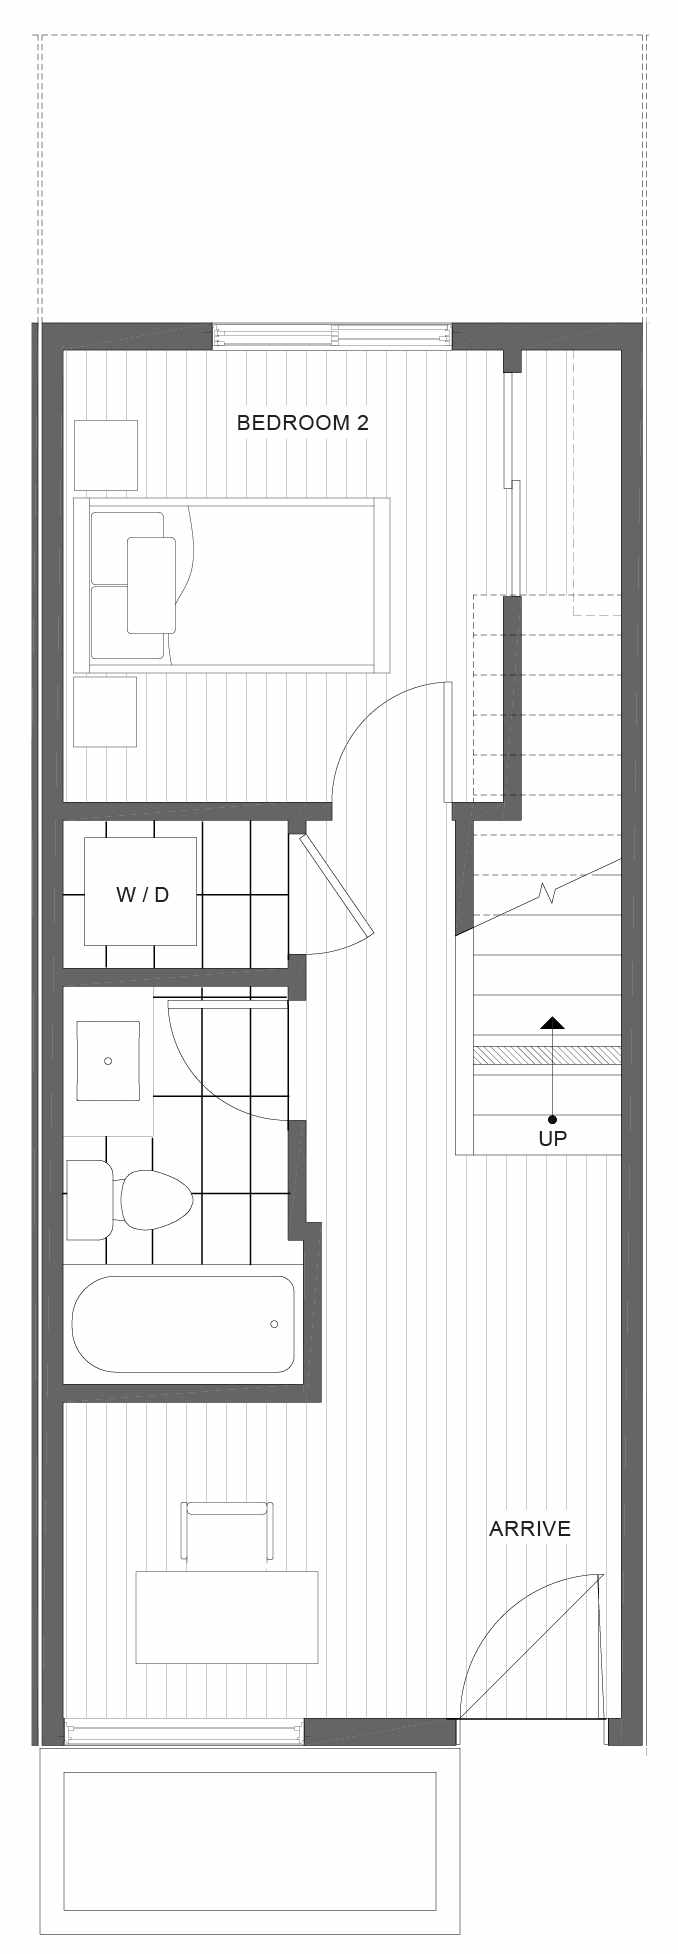 First Floor Plan of 1324 E Spring St of the Corazon II Townhomes